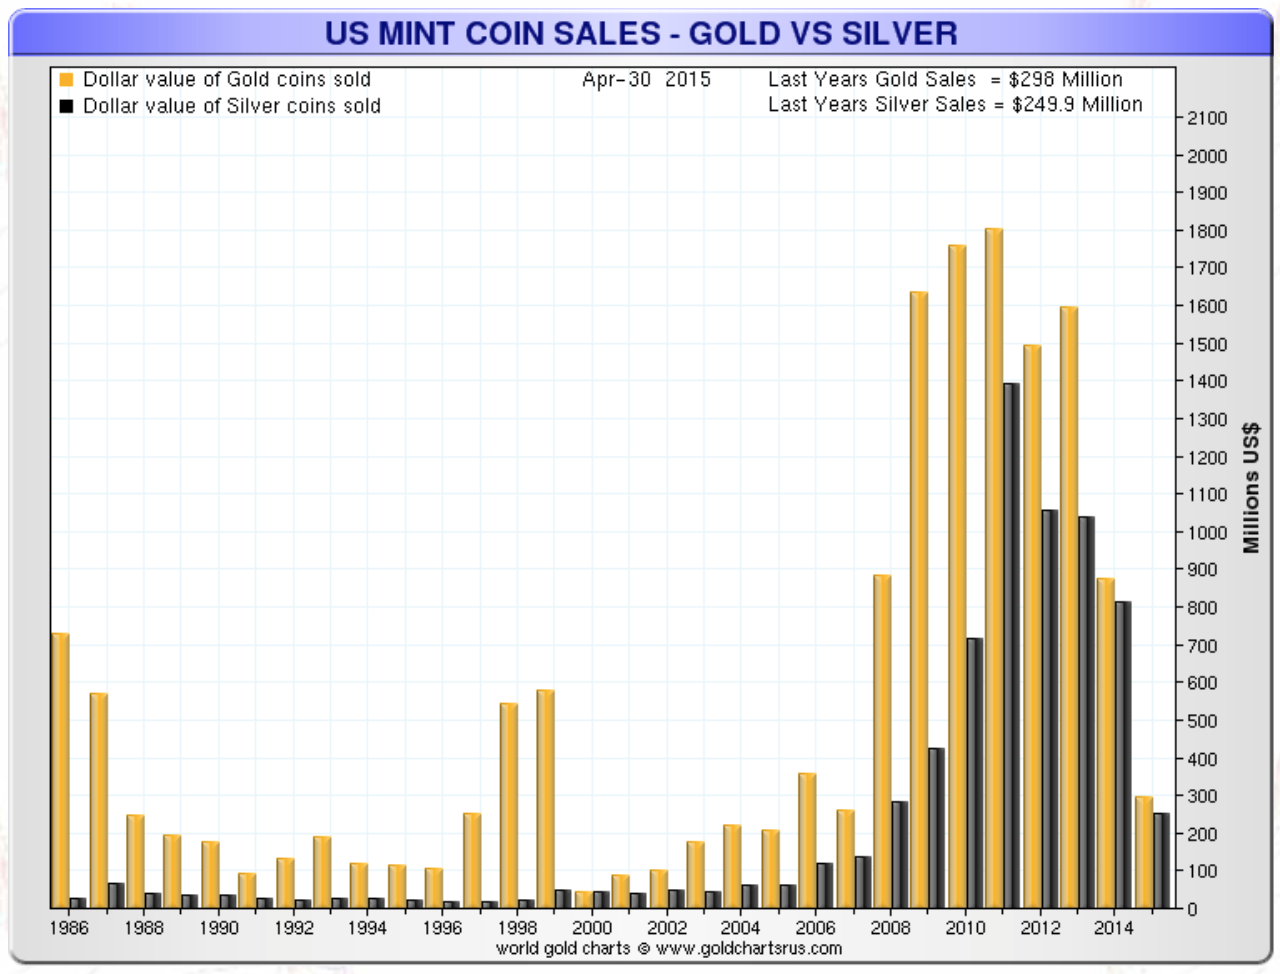 US Mint Coin Sales – Gold vs Silver (Million Dollars)